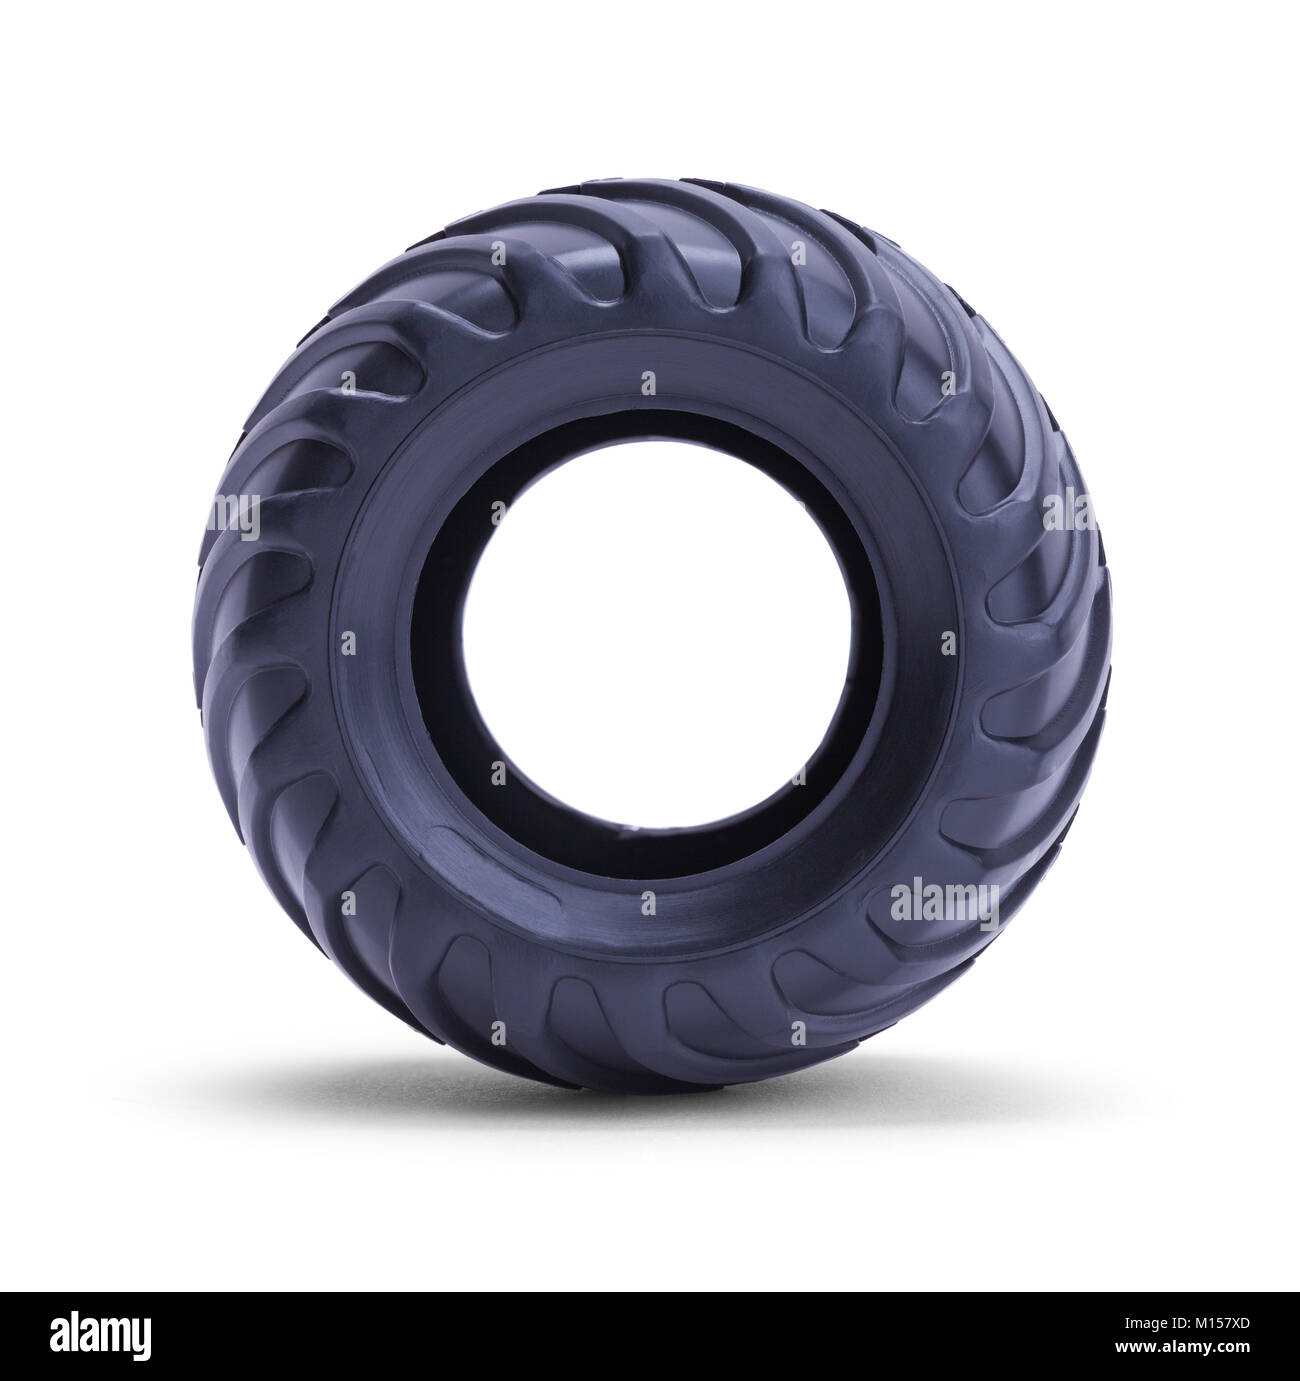 Toy Truck Tire Isolated on a White Background. - Stock Image